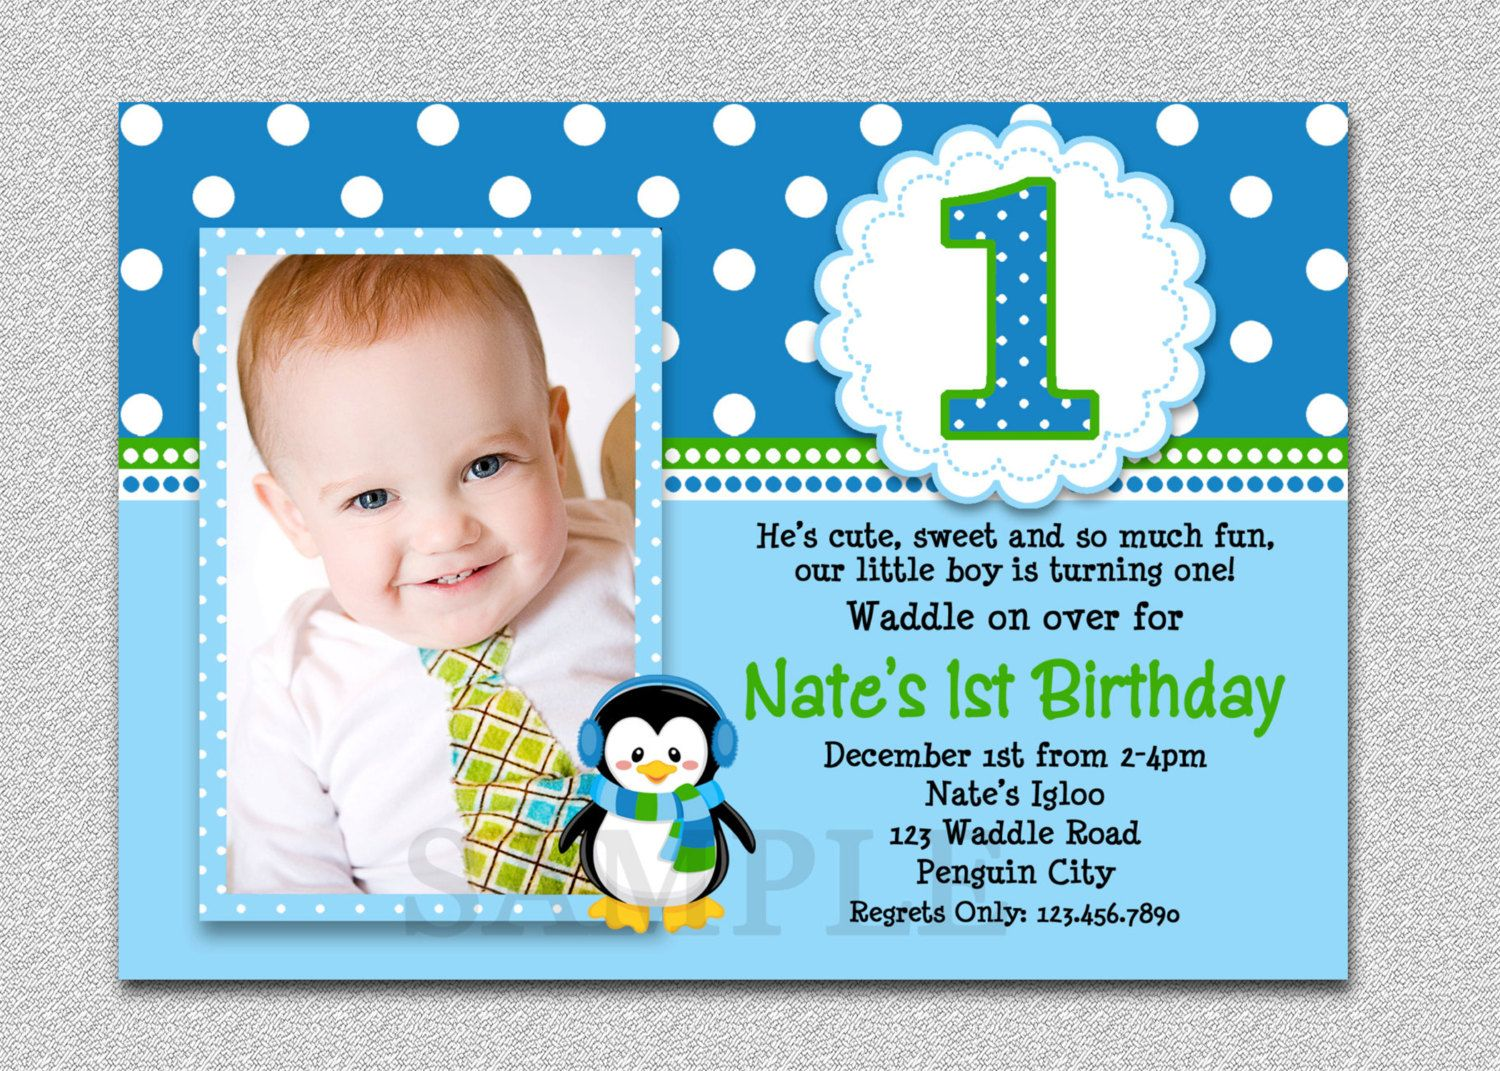 1st birthday invitations | 21st - Bridal World - Wedding Ideas and ...